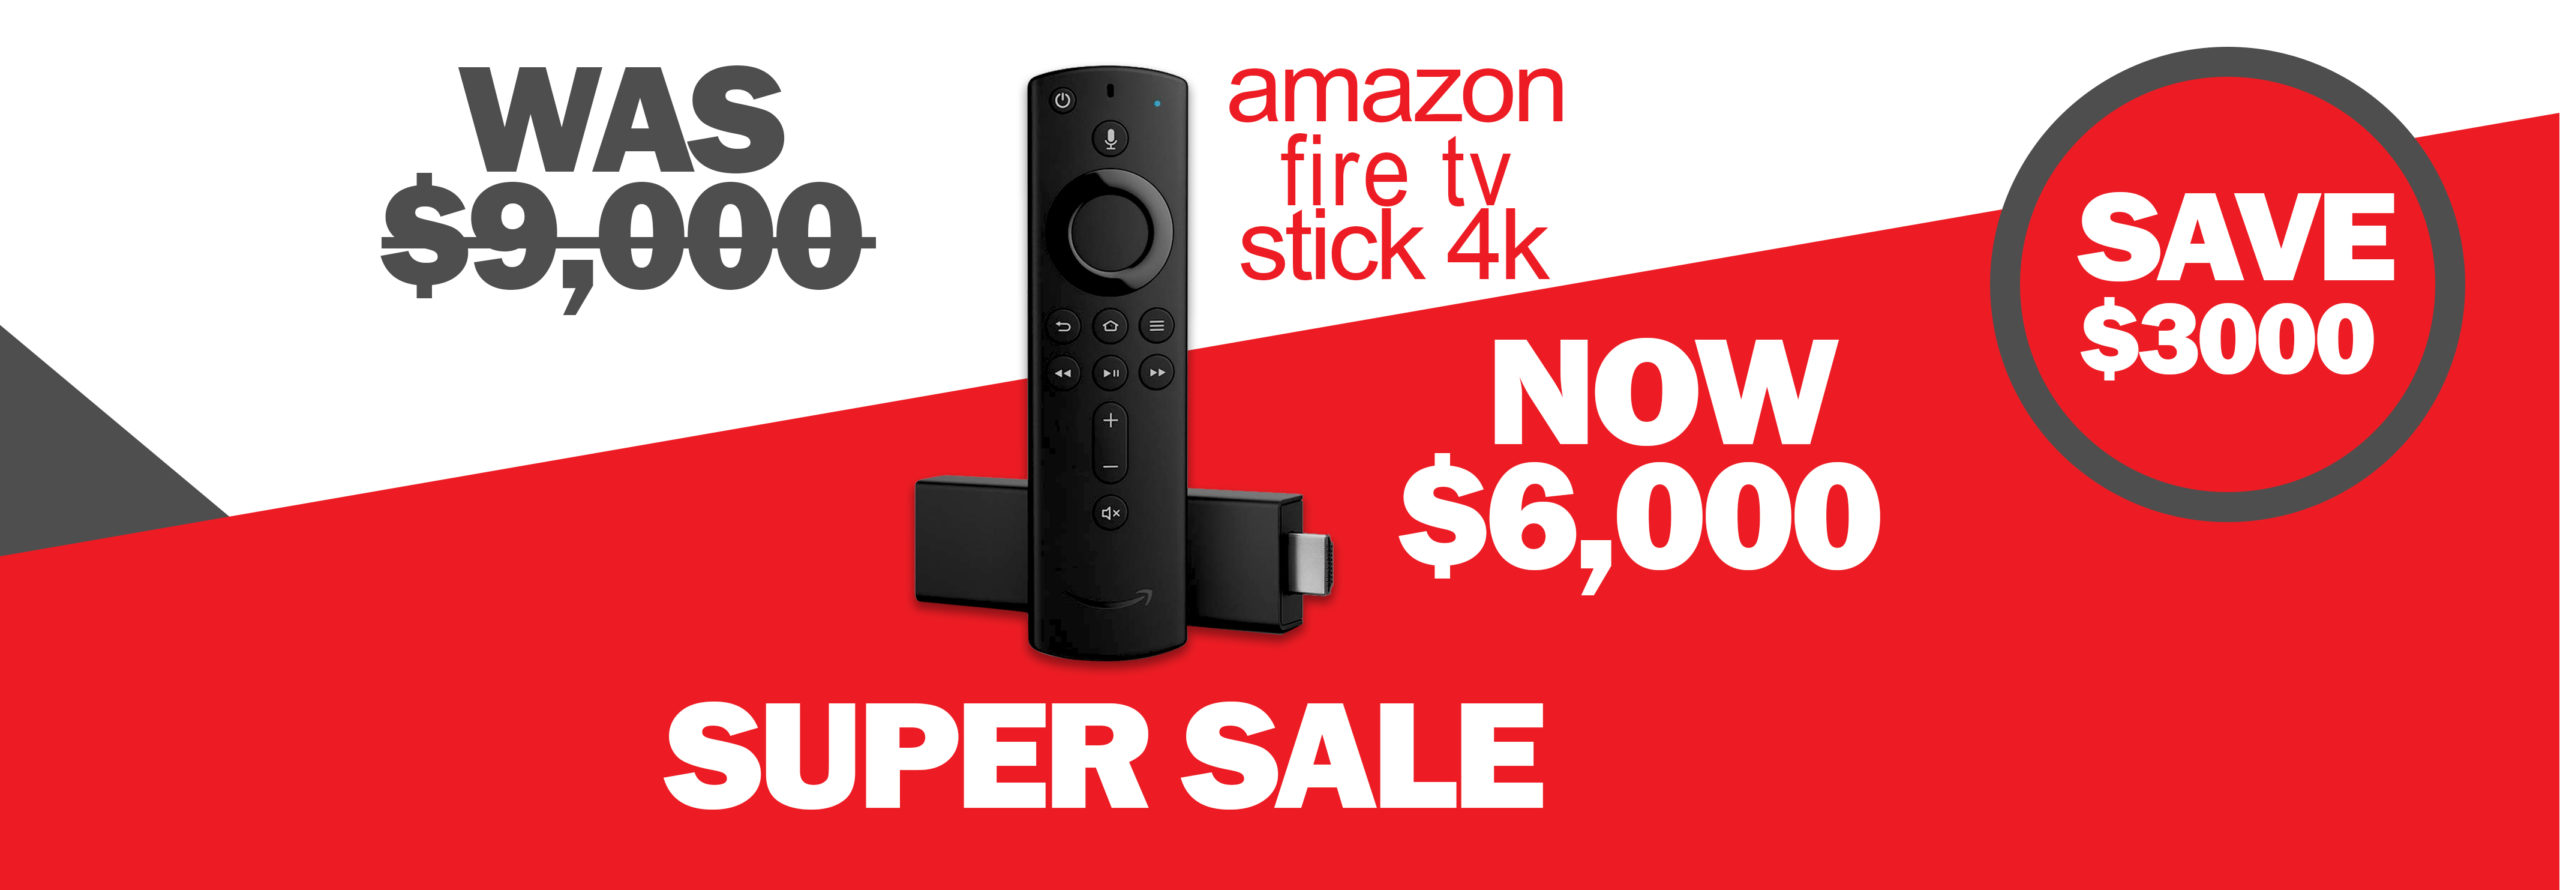 AMAZON_FIRE_STICK-SALE